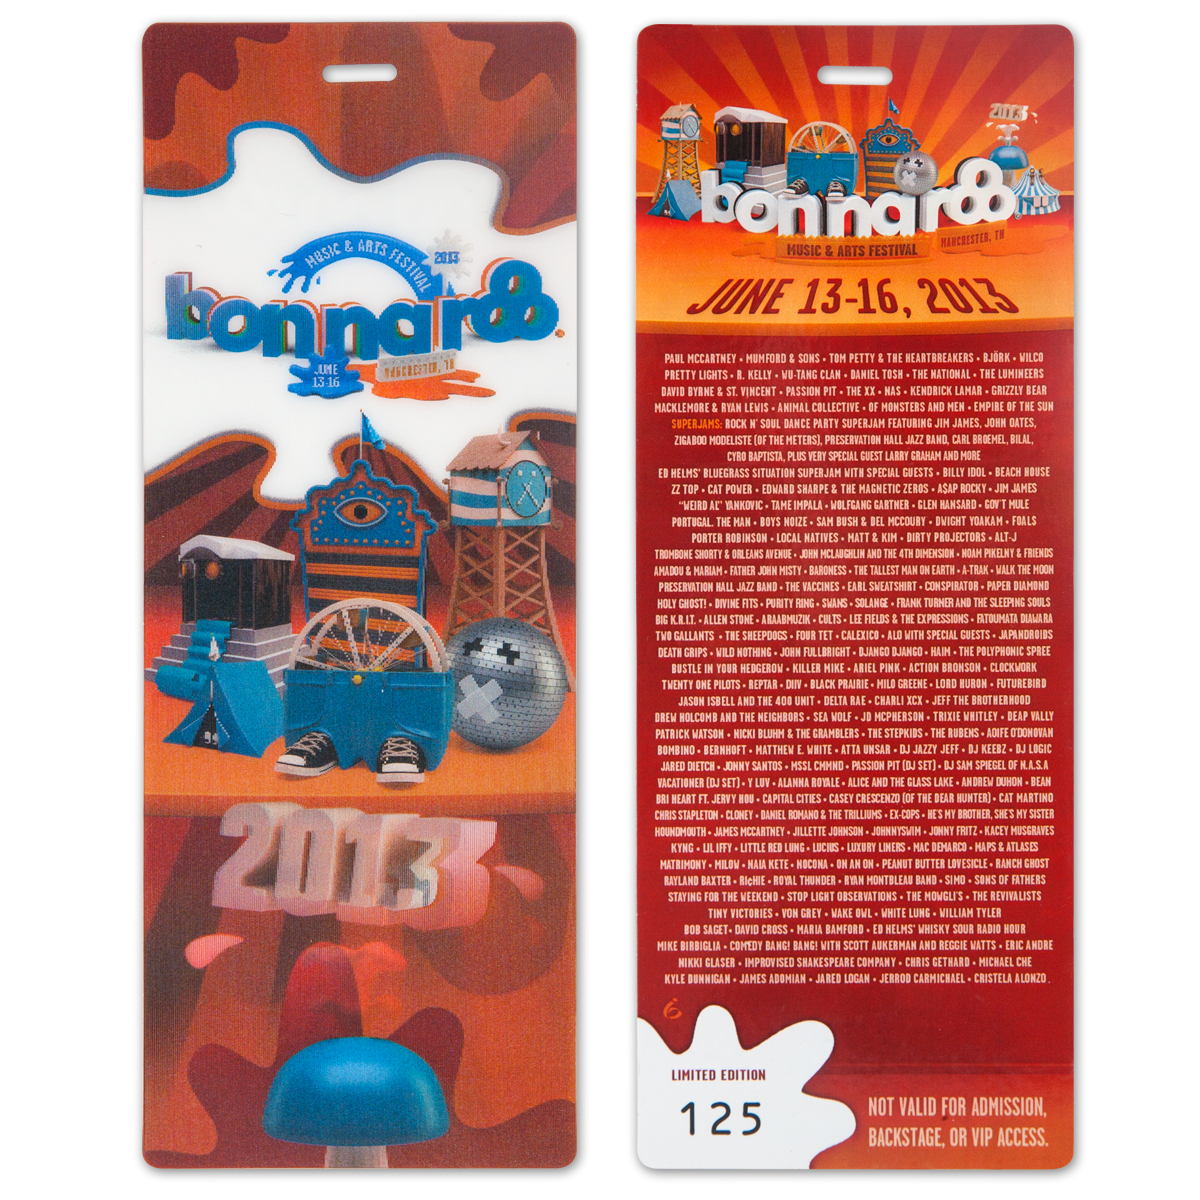 Bonnaroo 2013 Commemorative Ticket